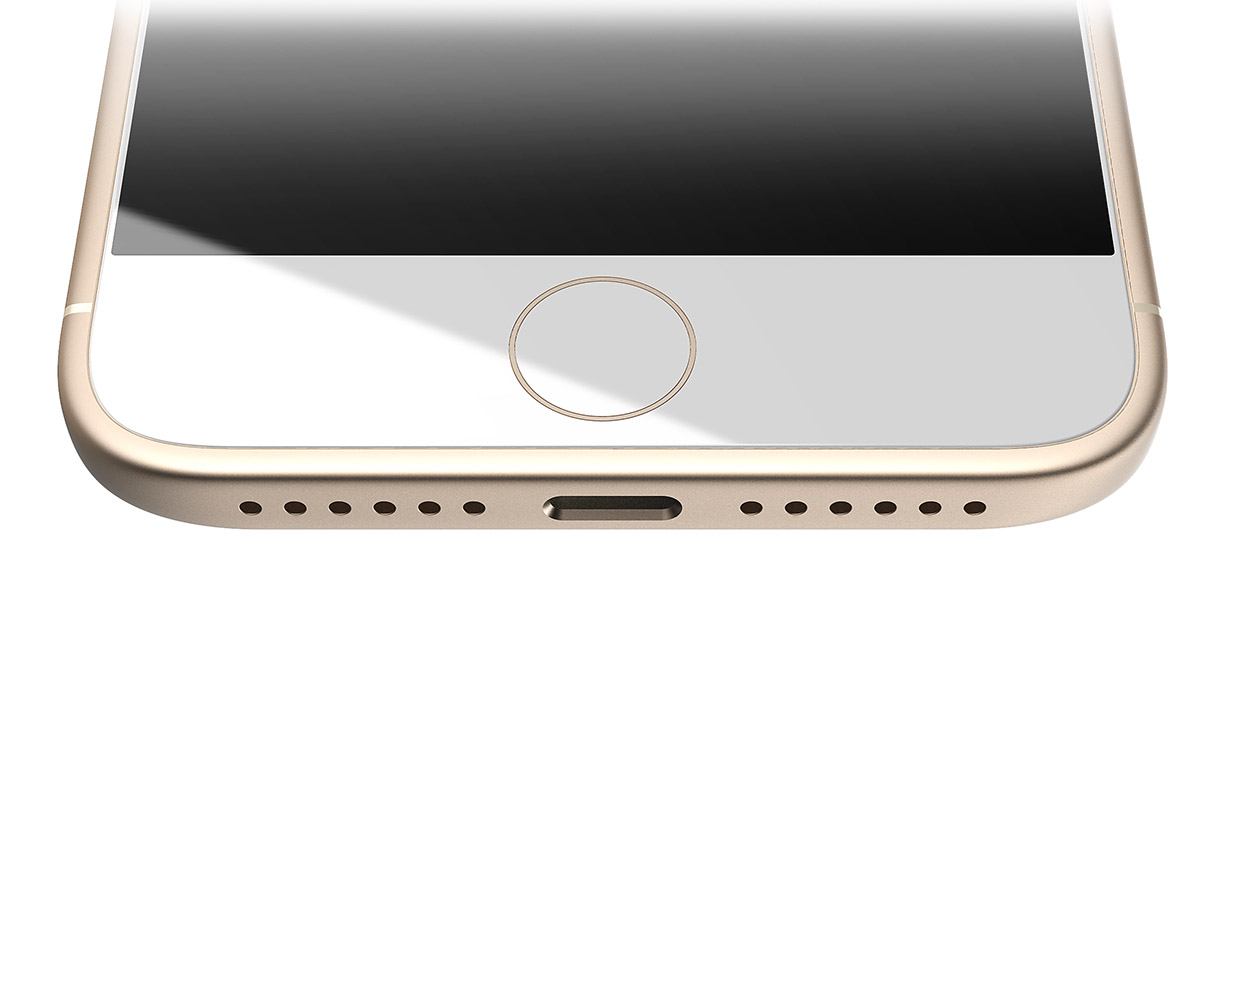 Awesome iPhone 7 Concept Has All Its Rumored Features [Video]